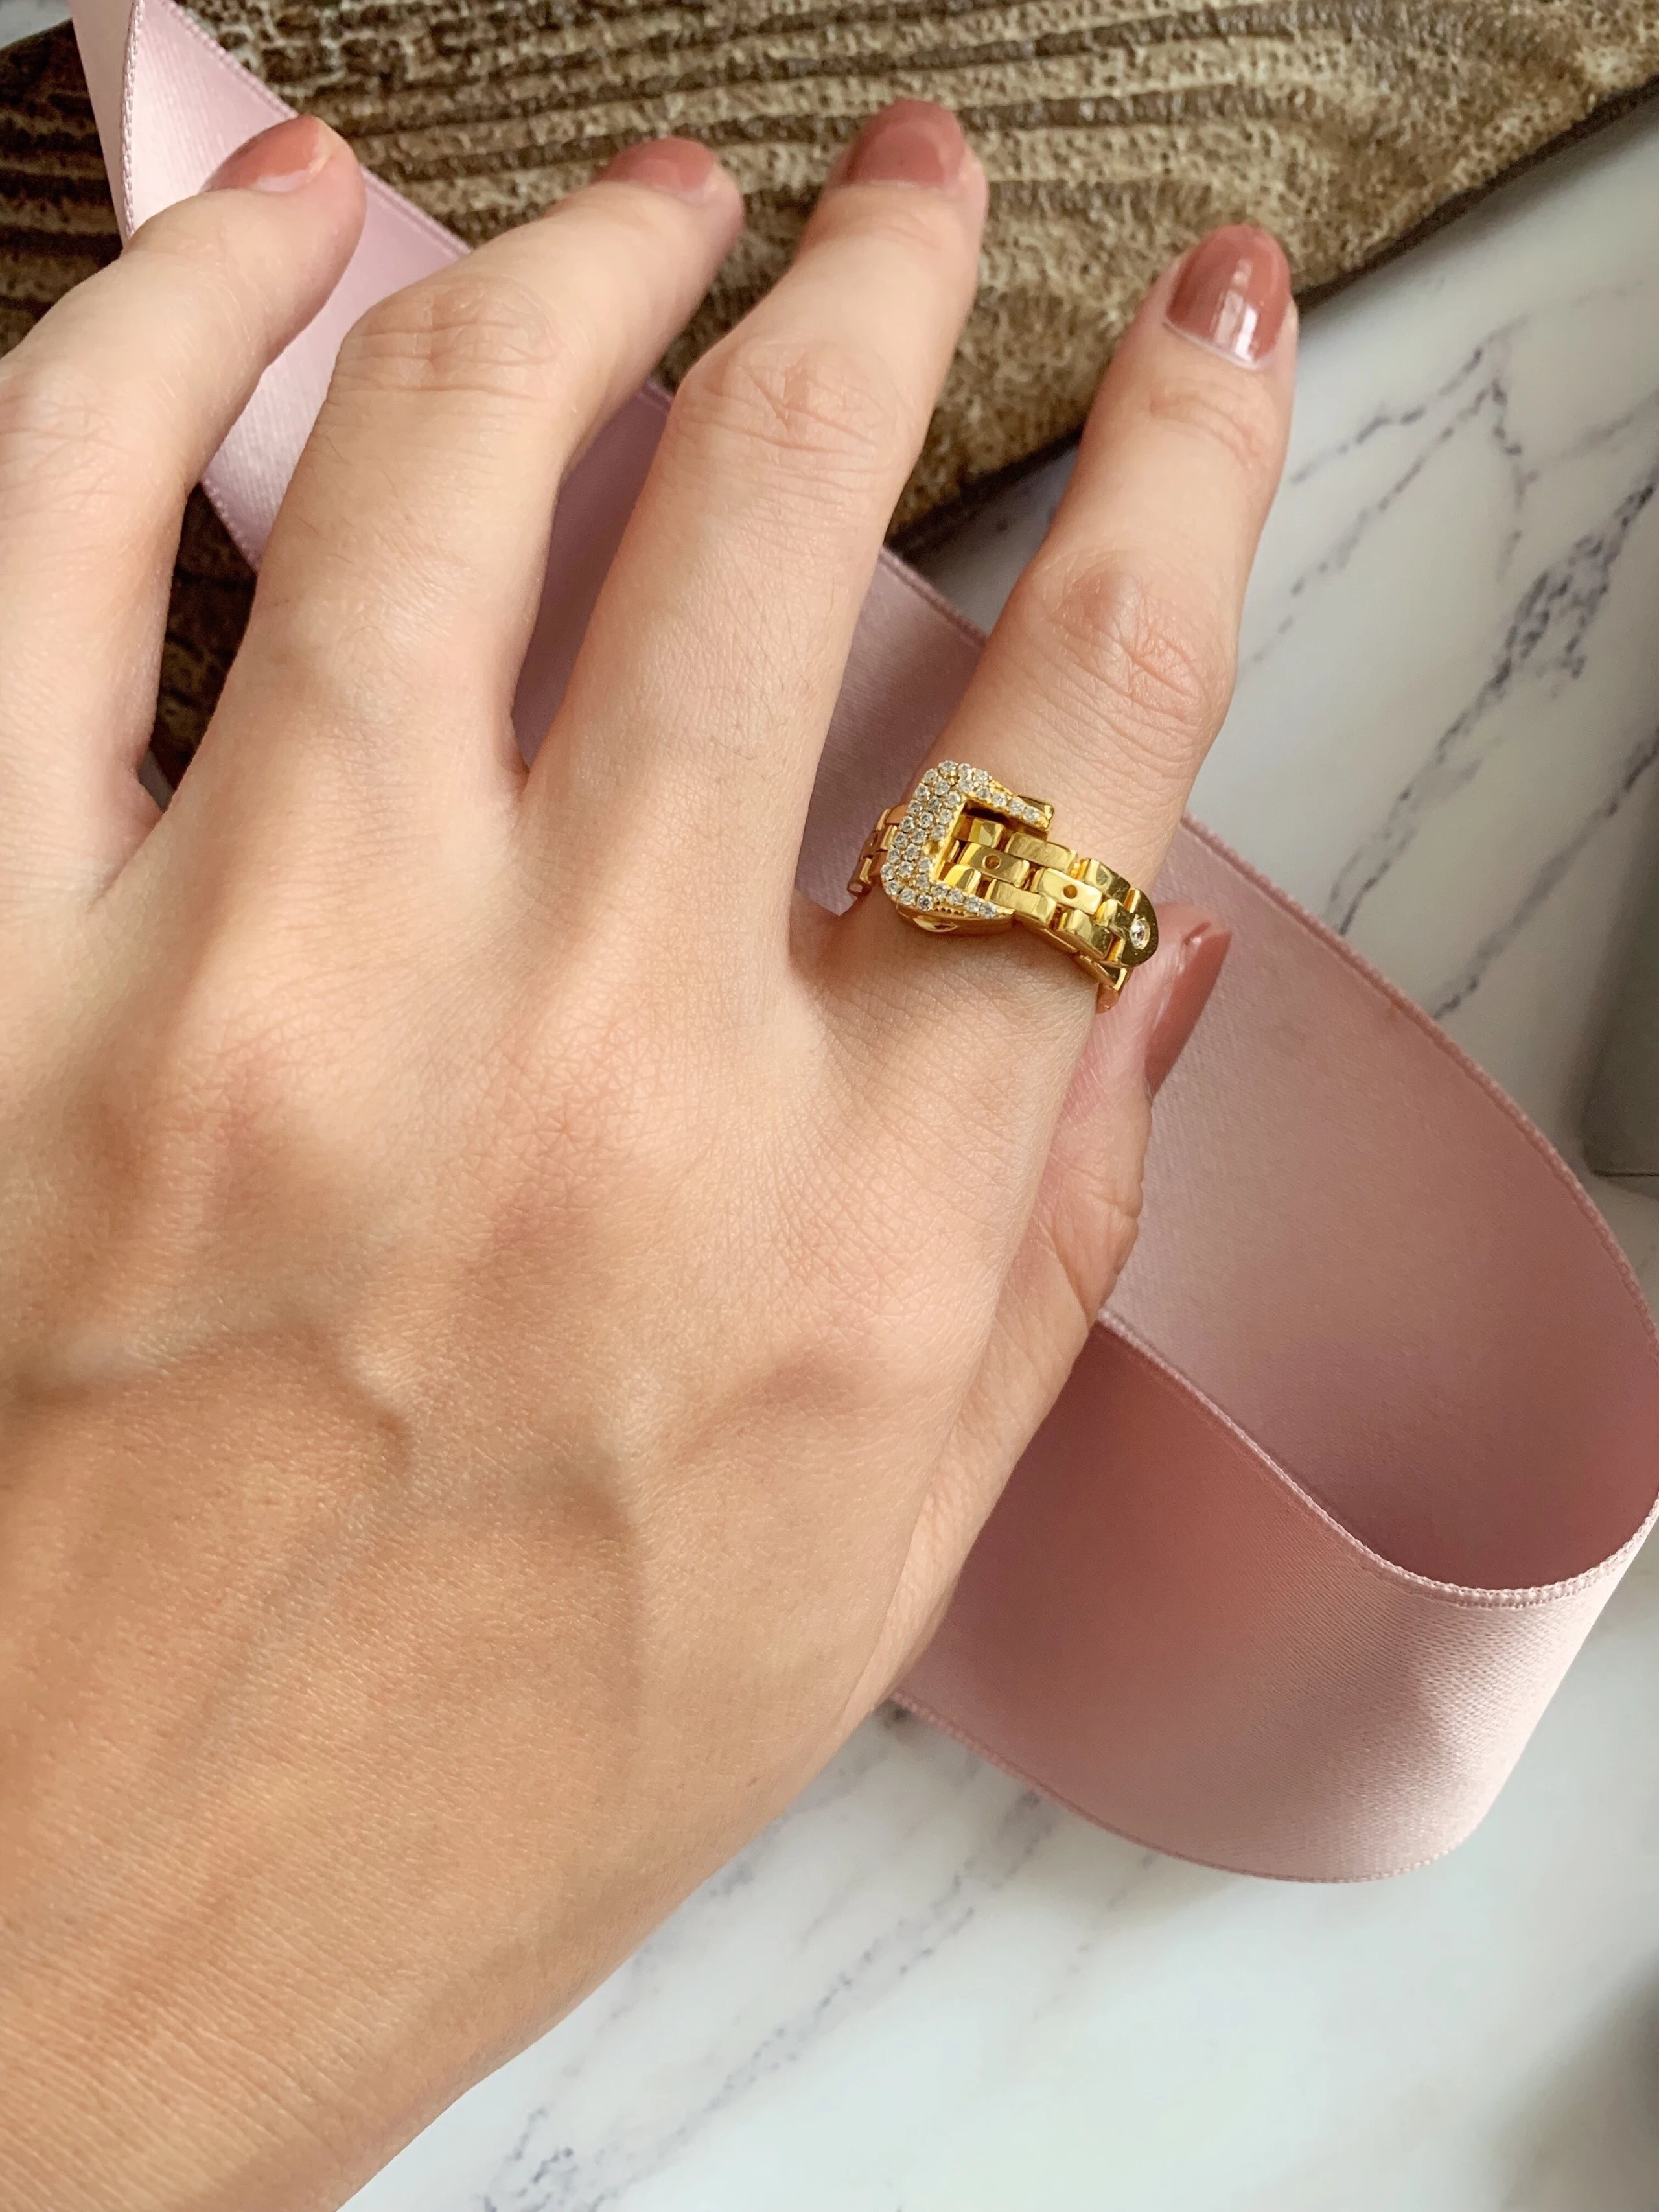 Canadian niche designer brand buck up chain tie ring female adjustable gentle cool girl